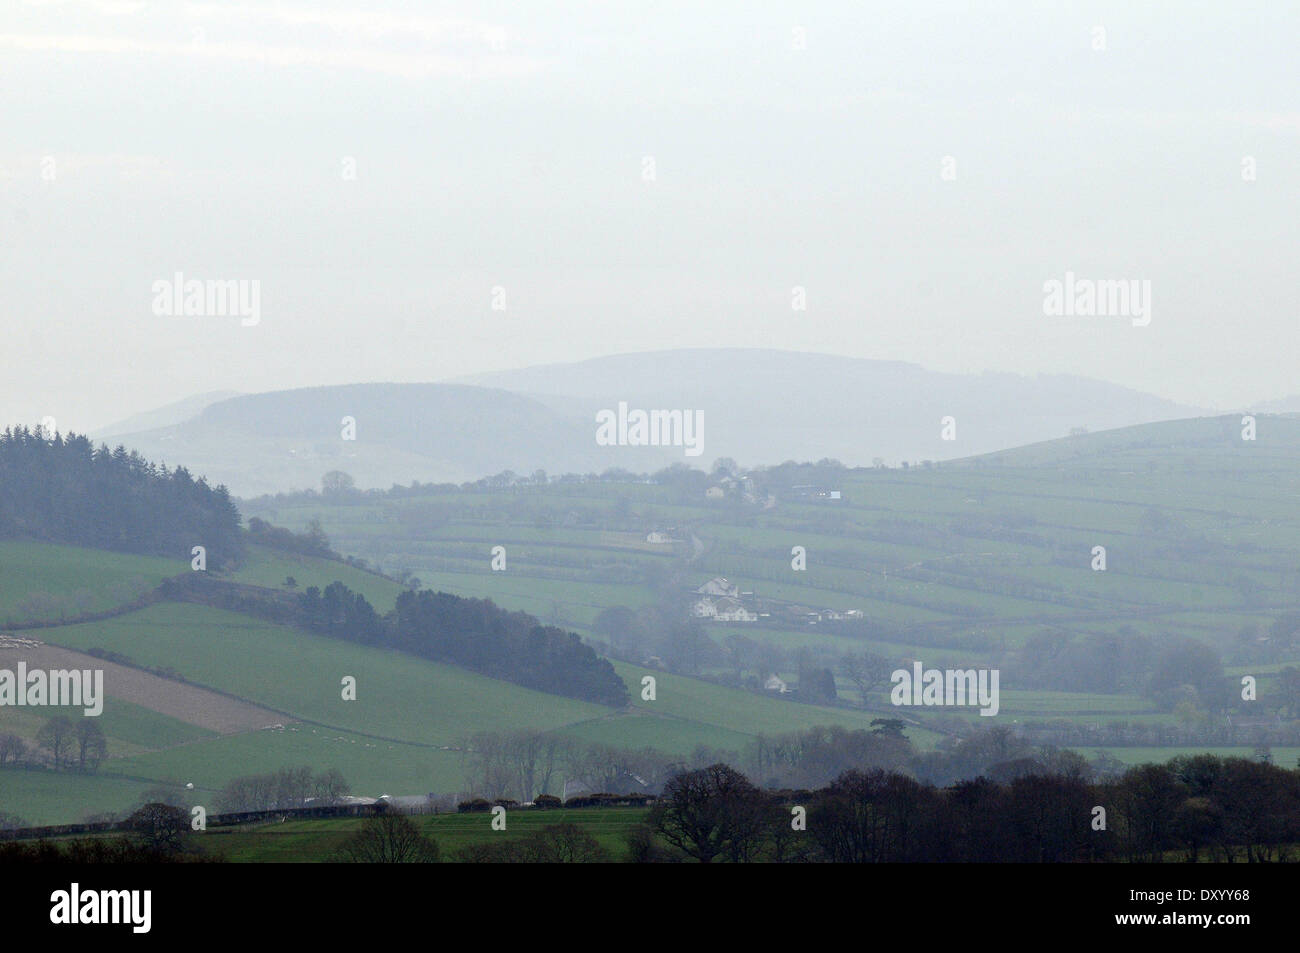 Aberystwyth, Wales, UK. 2nd April, 2014. - Mist and murk conceals the Cambrian Mountains after days of fine sunny weather and blue skies in west Wales - 2 April 2014, Photo Credit: John Gilbey/Alamy Live News. - Stock Image